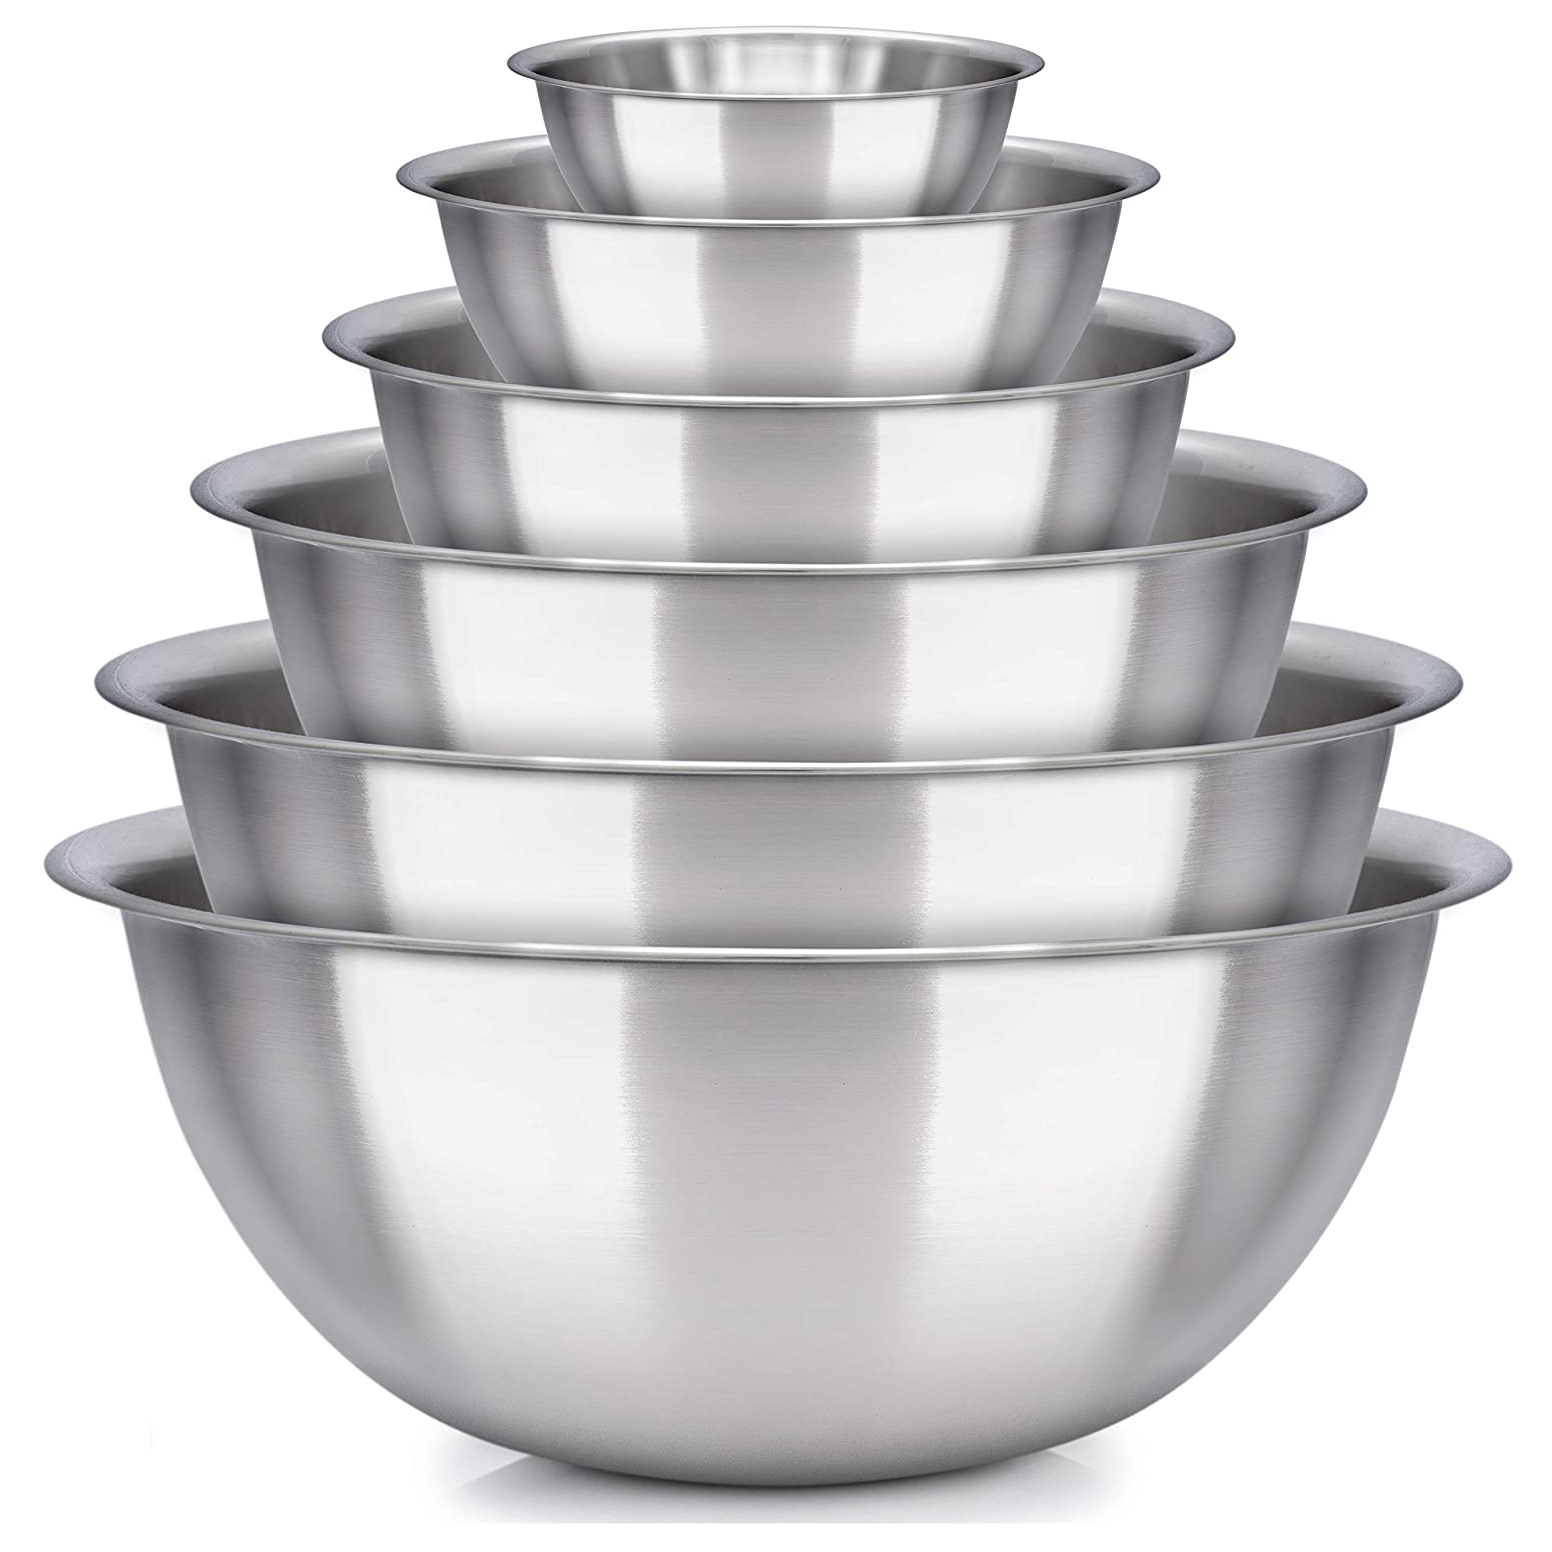 mixing bowl Set of 6 - stainless steel mixing bowls